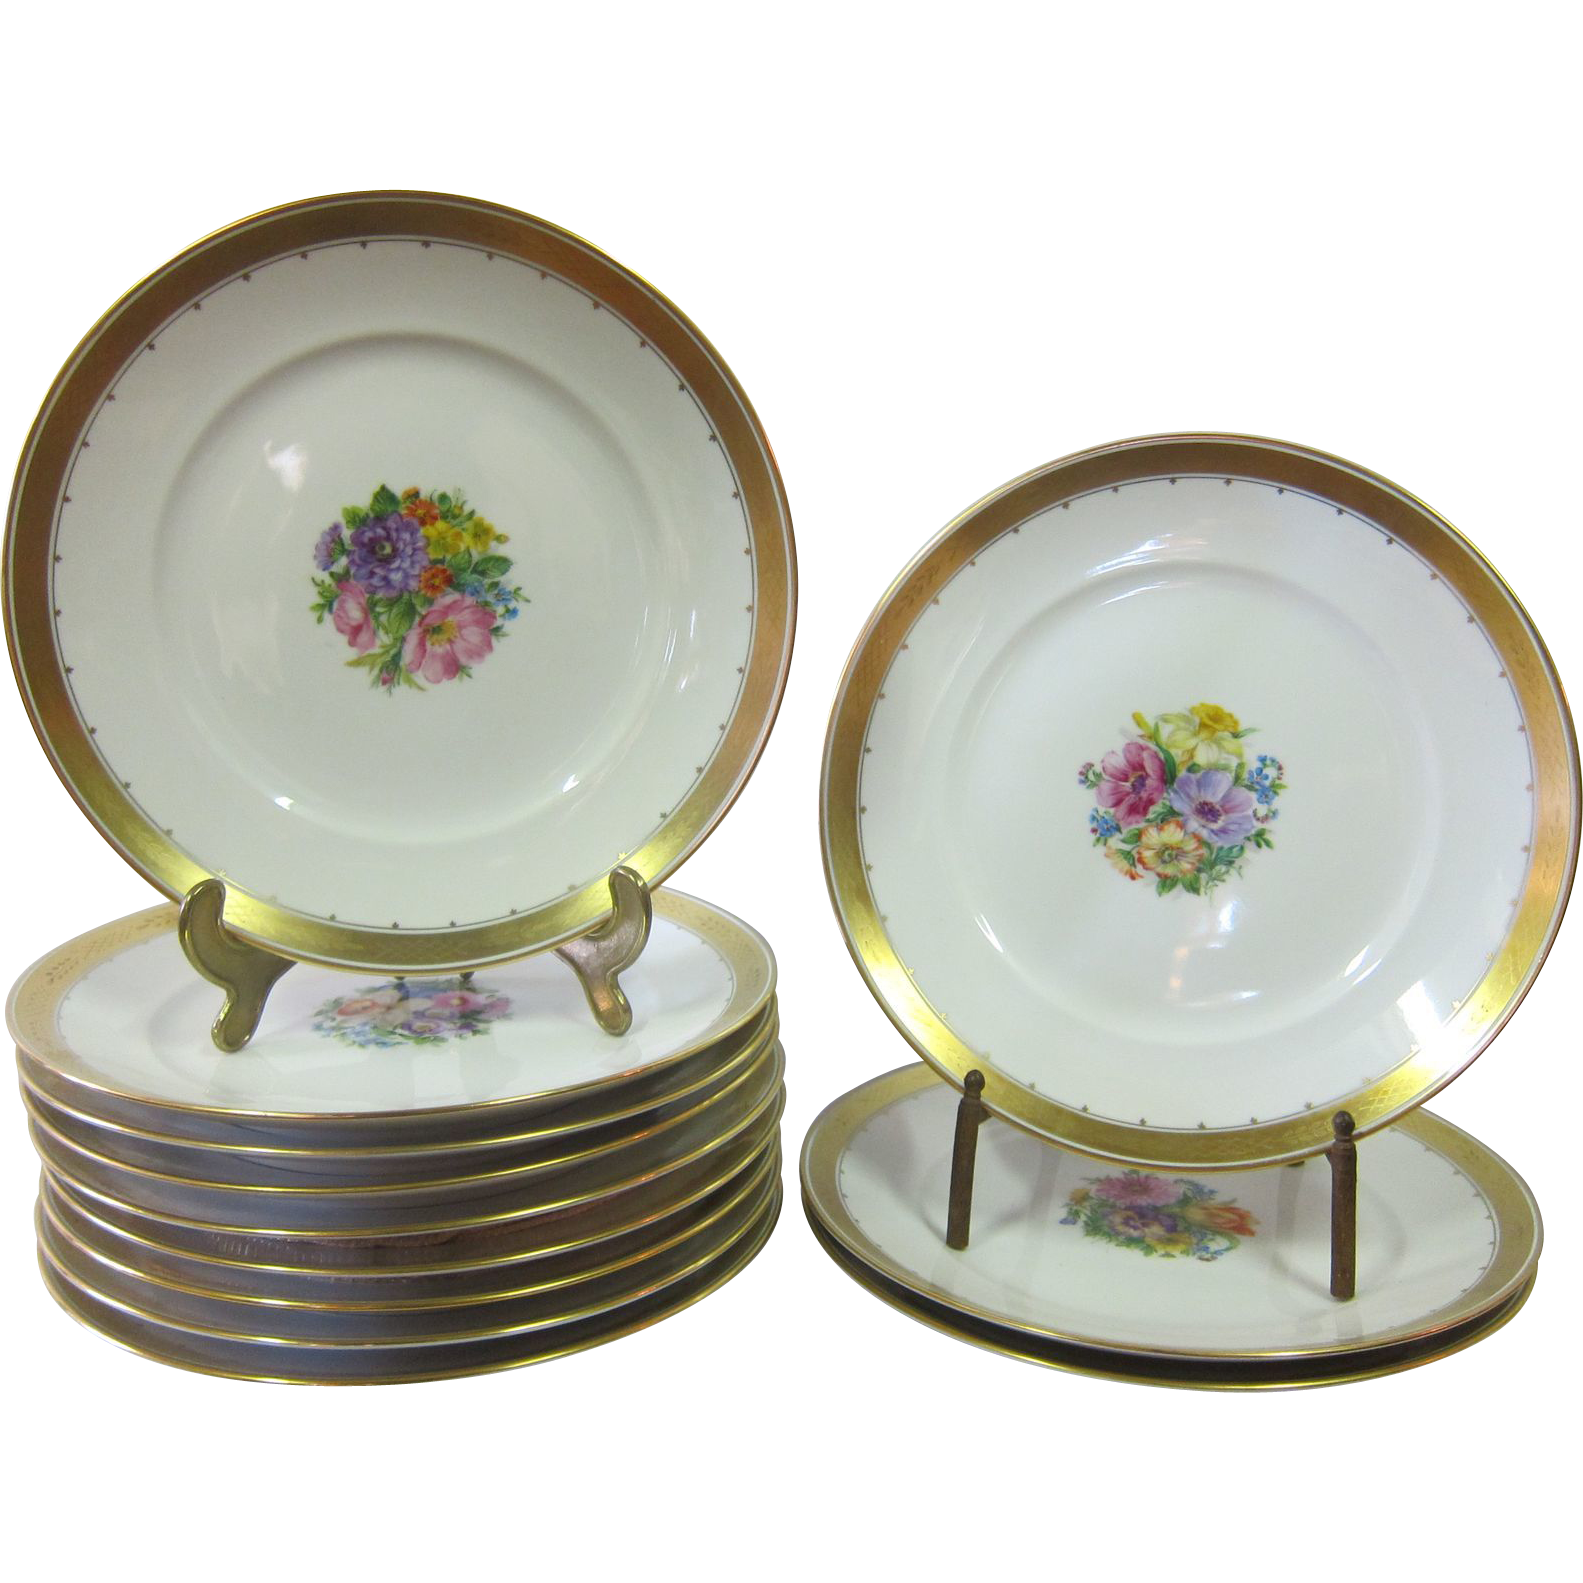 royal copenhagen porcelain from zinziantiques on ruby lane